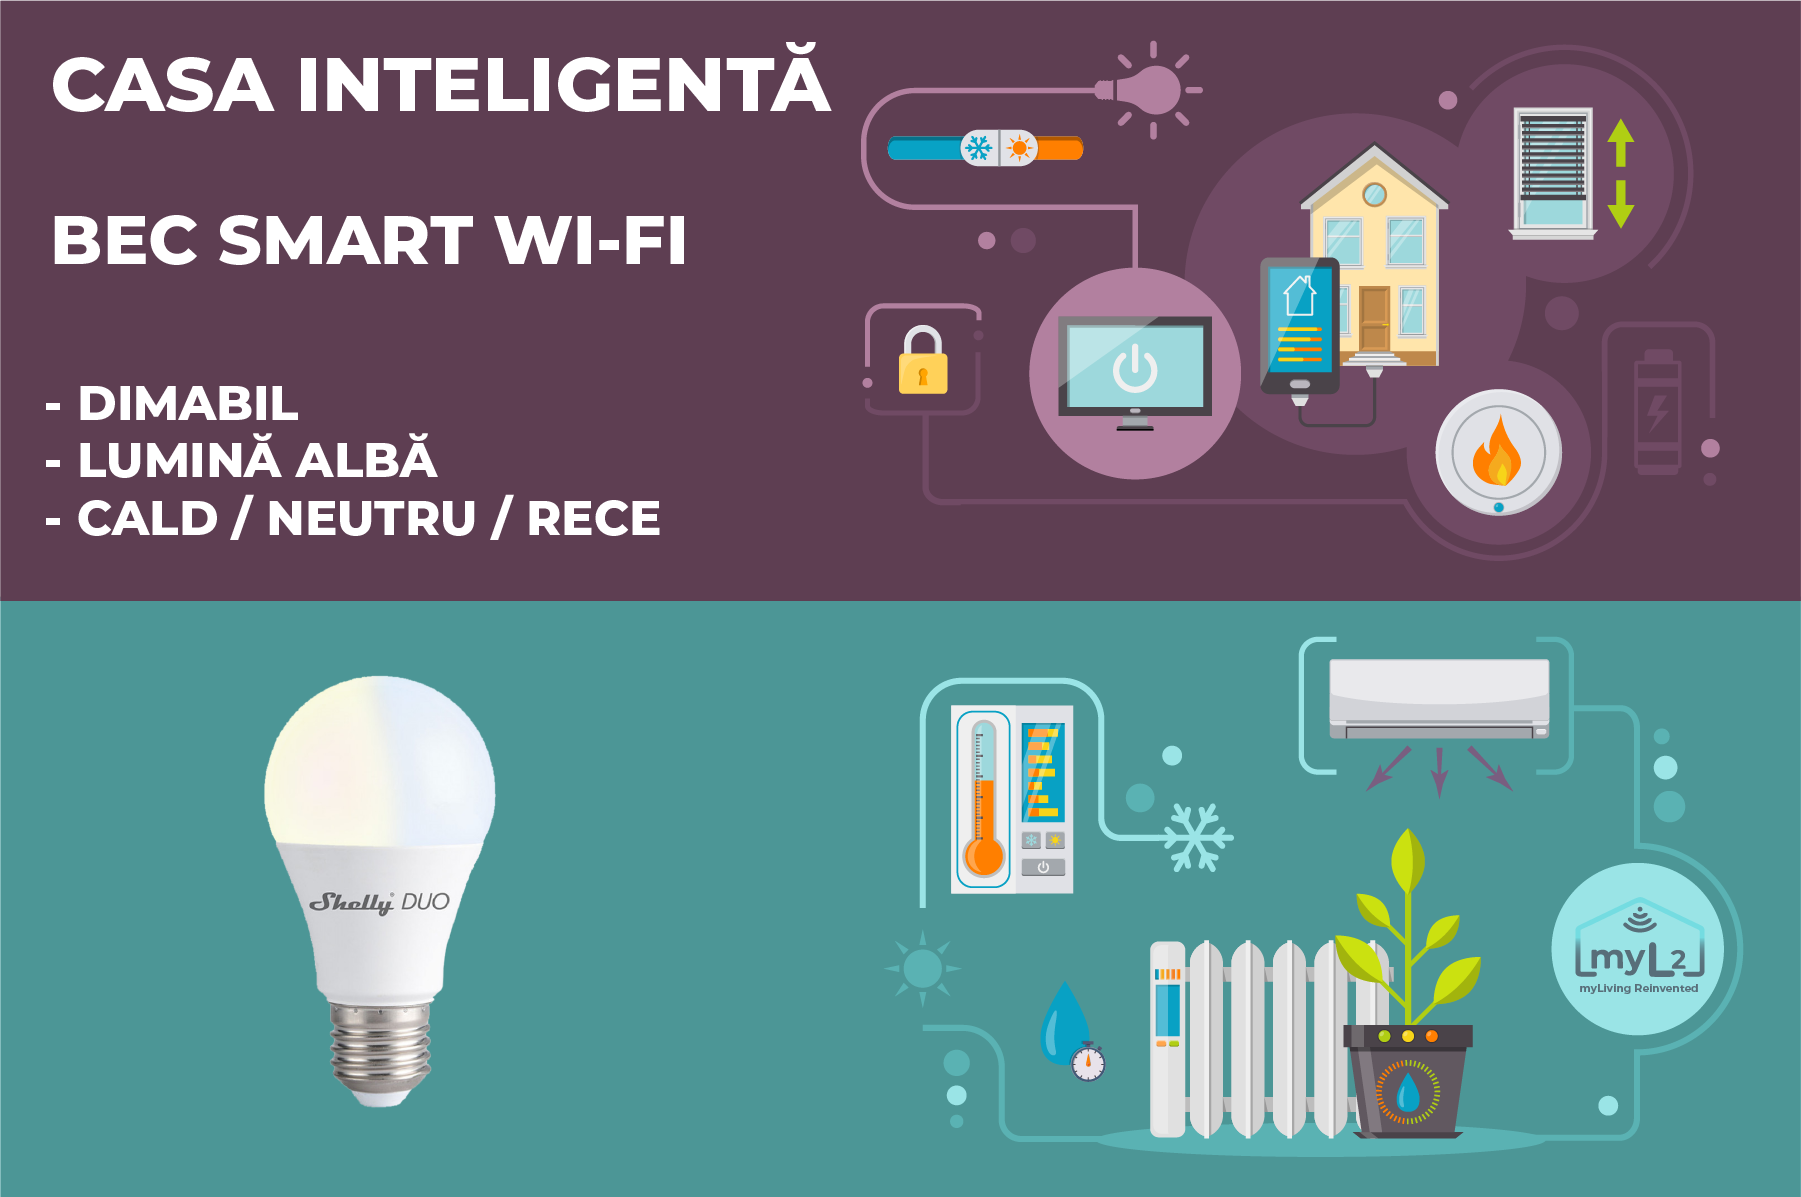 bec smart shelly duo e27 9w wifi xiaomi aqara